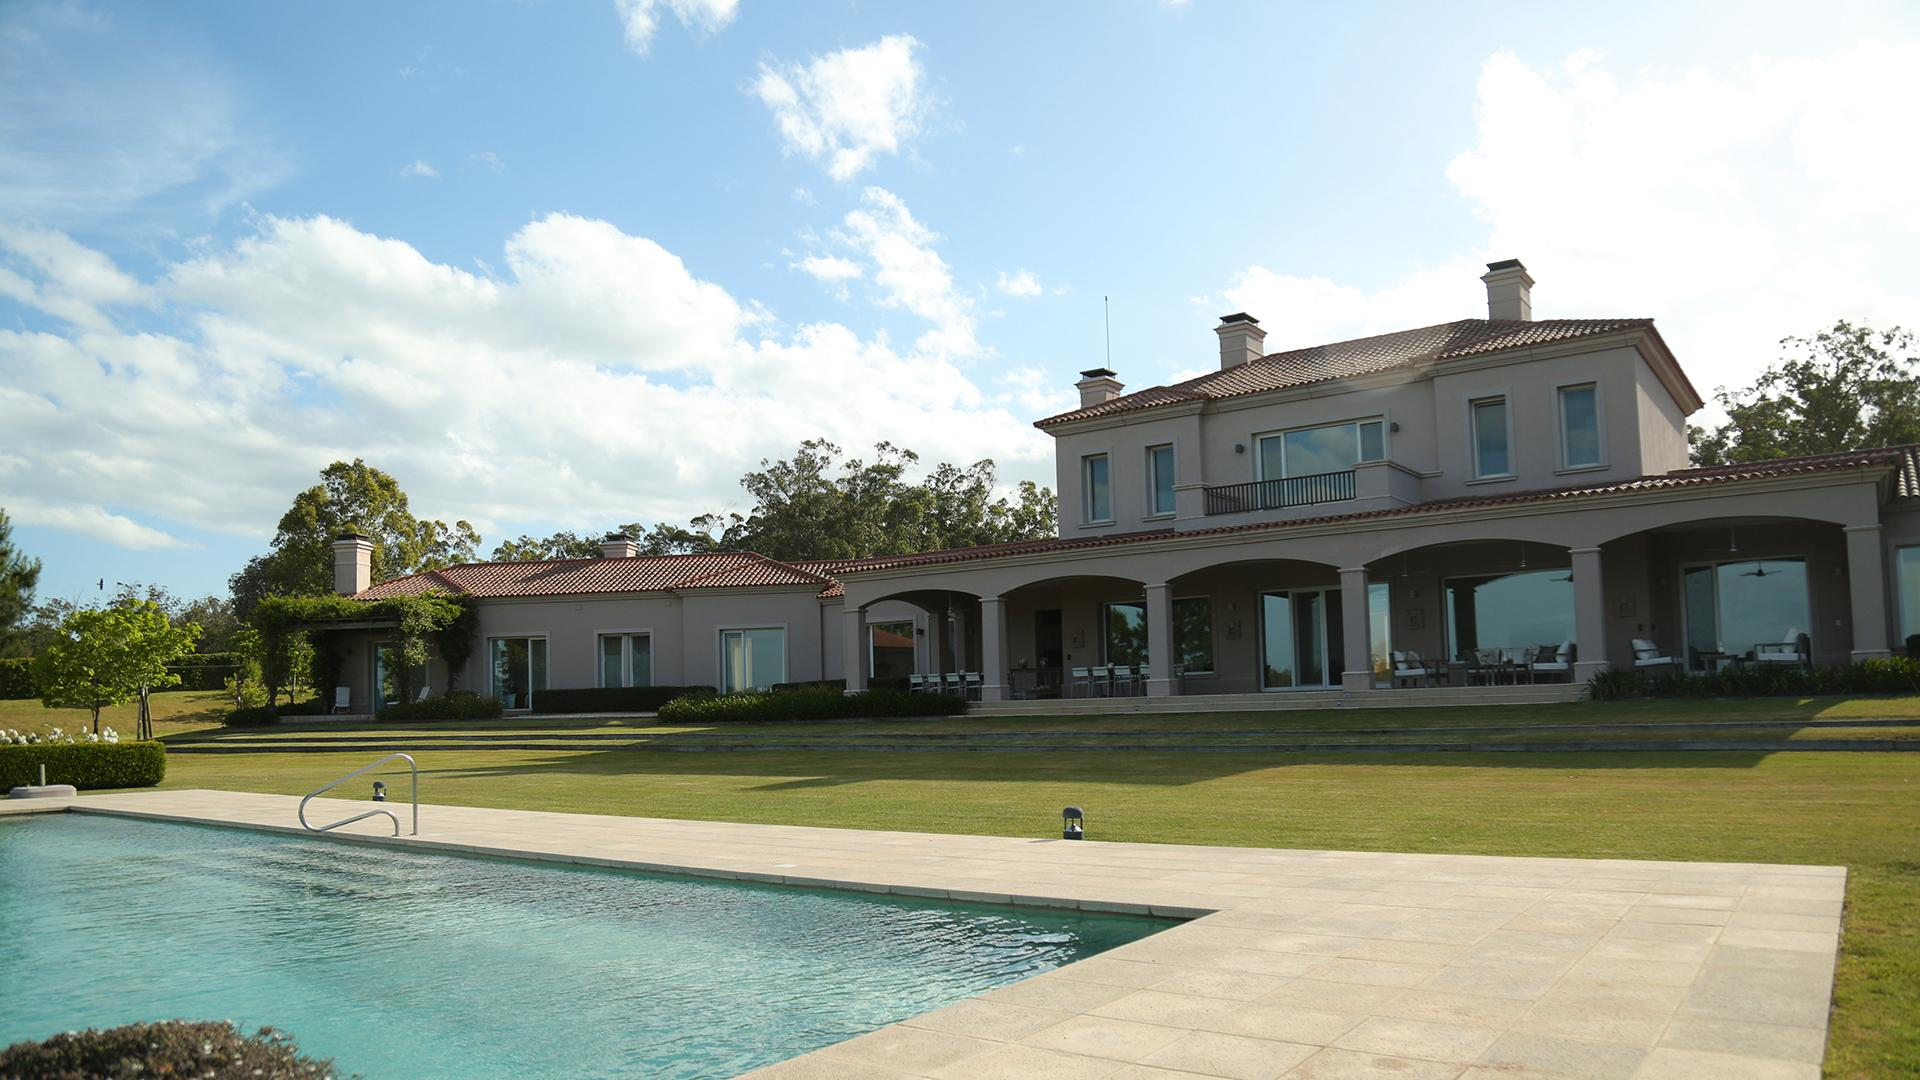 Exceptional Tuscan Style Villa located in Manantiales, Punta del Este, Uruguay, listed by Curiocity Villas.